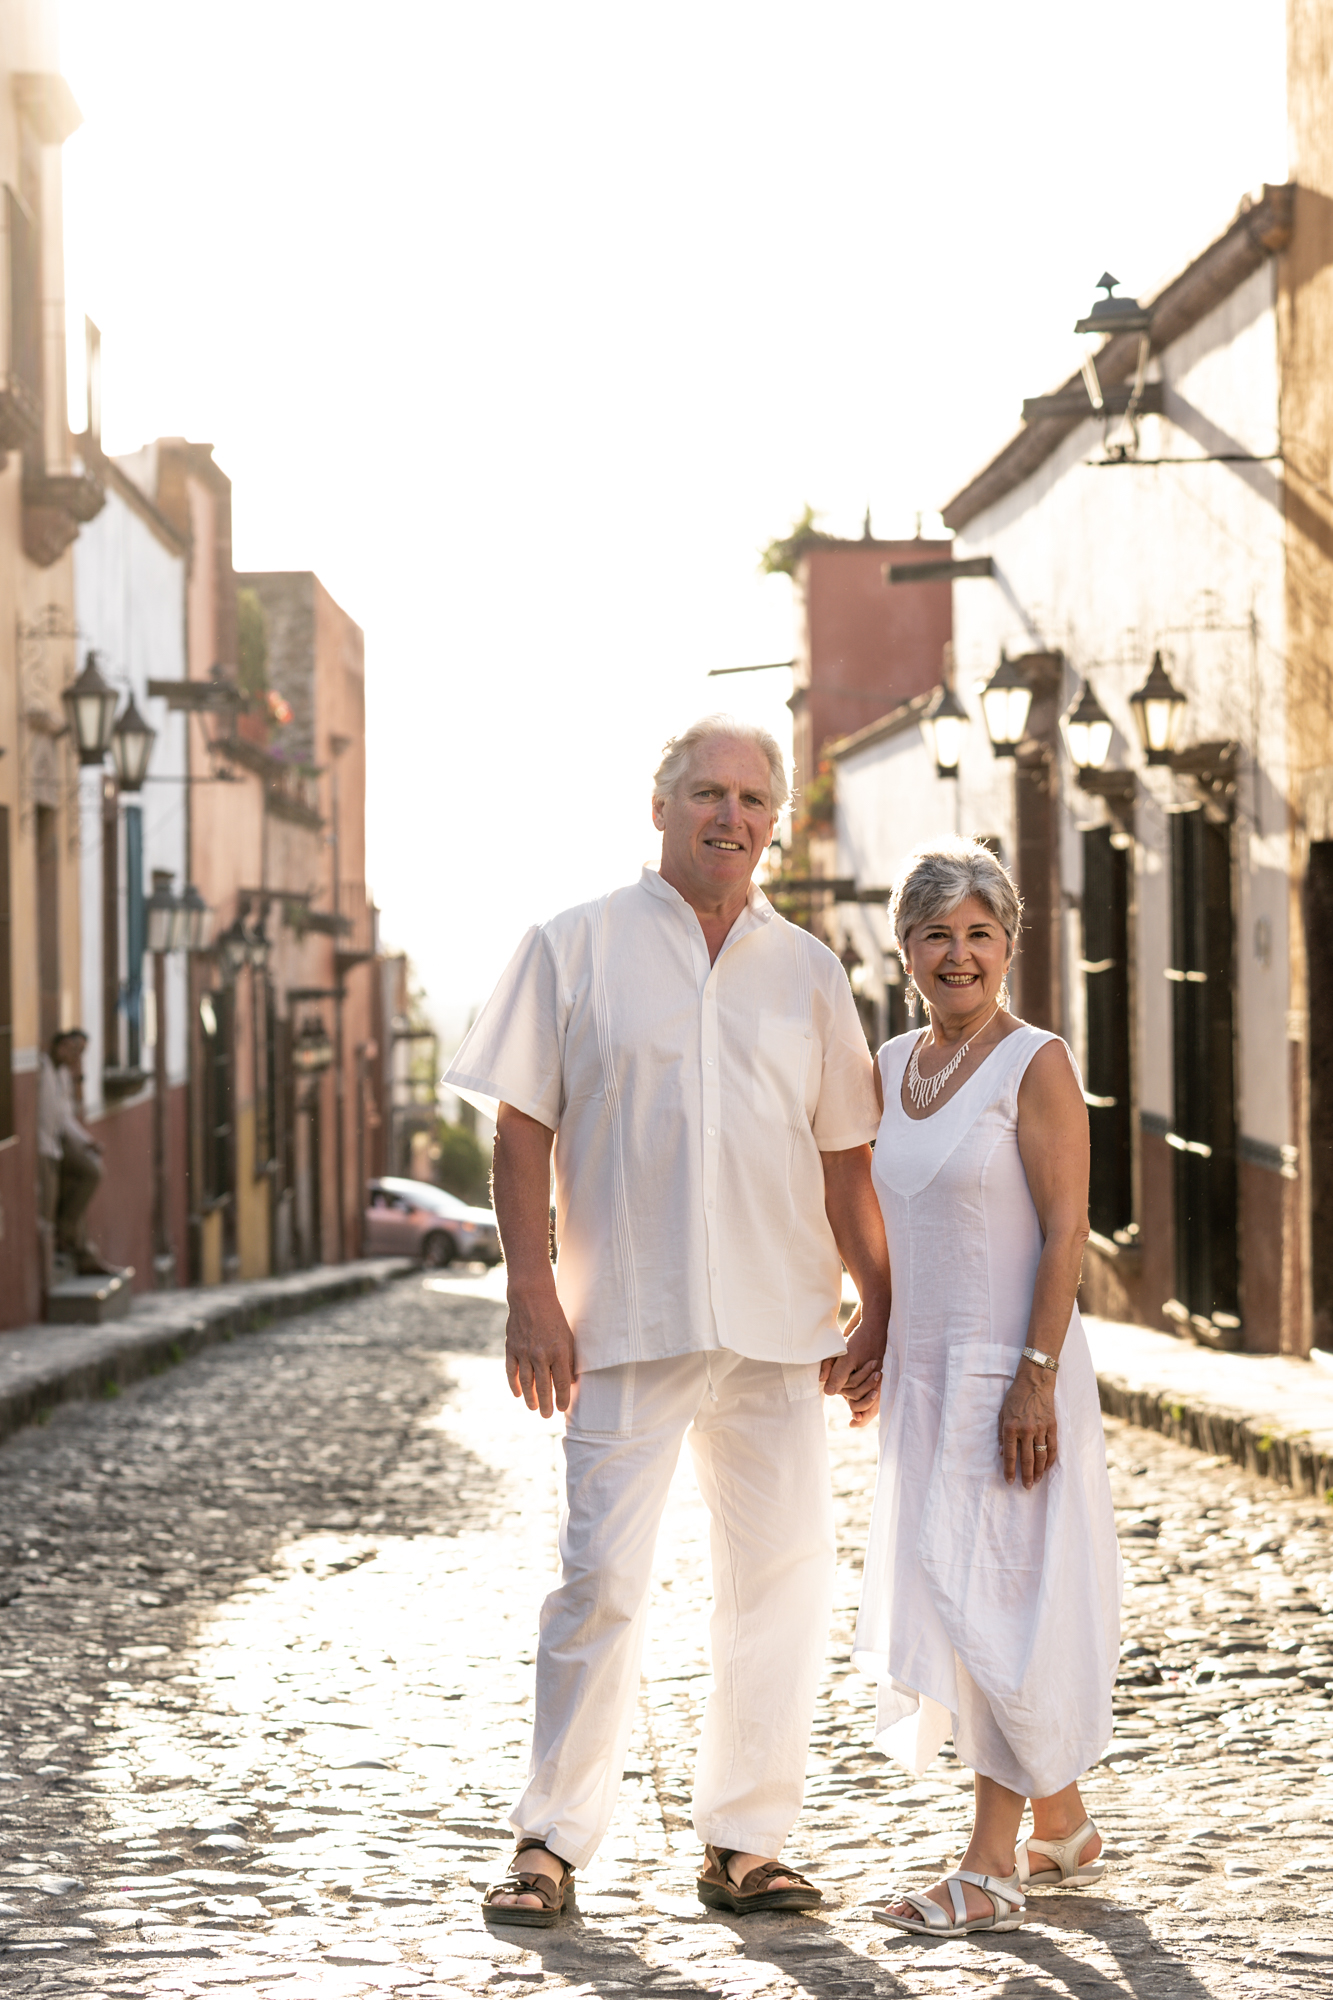 Photoshoot session in San Miguel de Allende with Suzanne and Leo-39.jpg